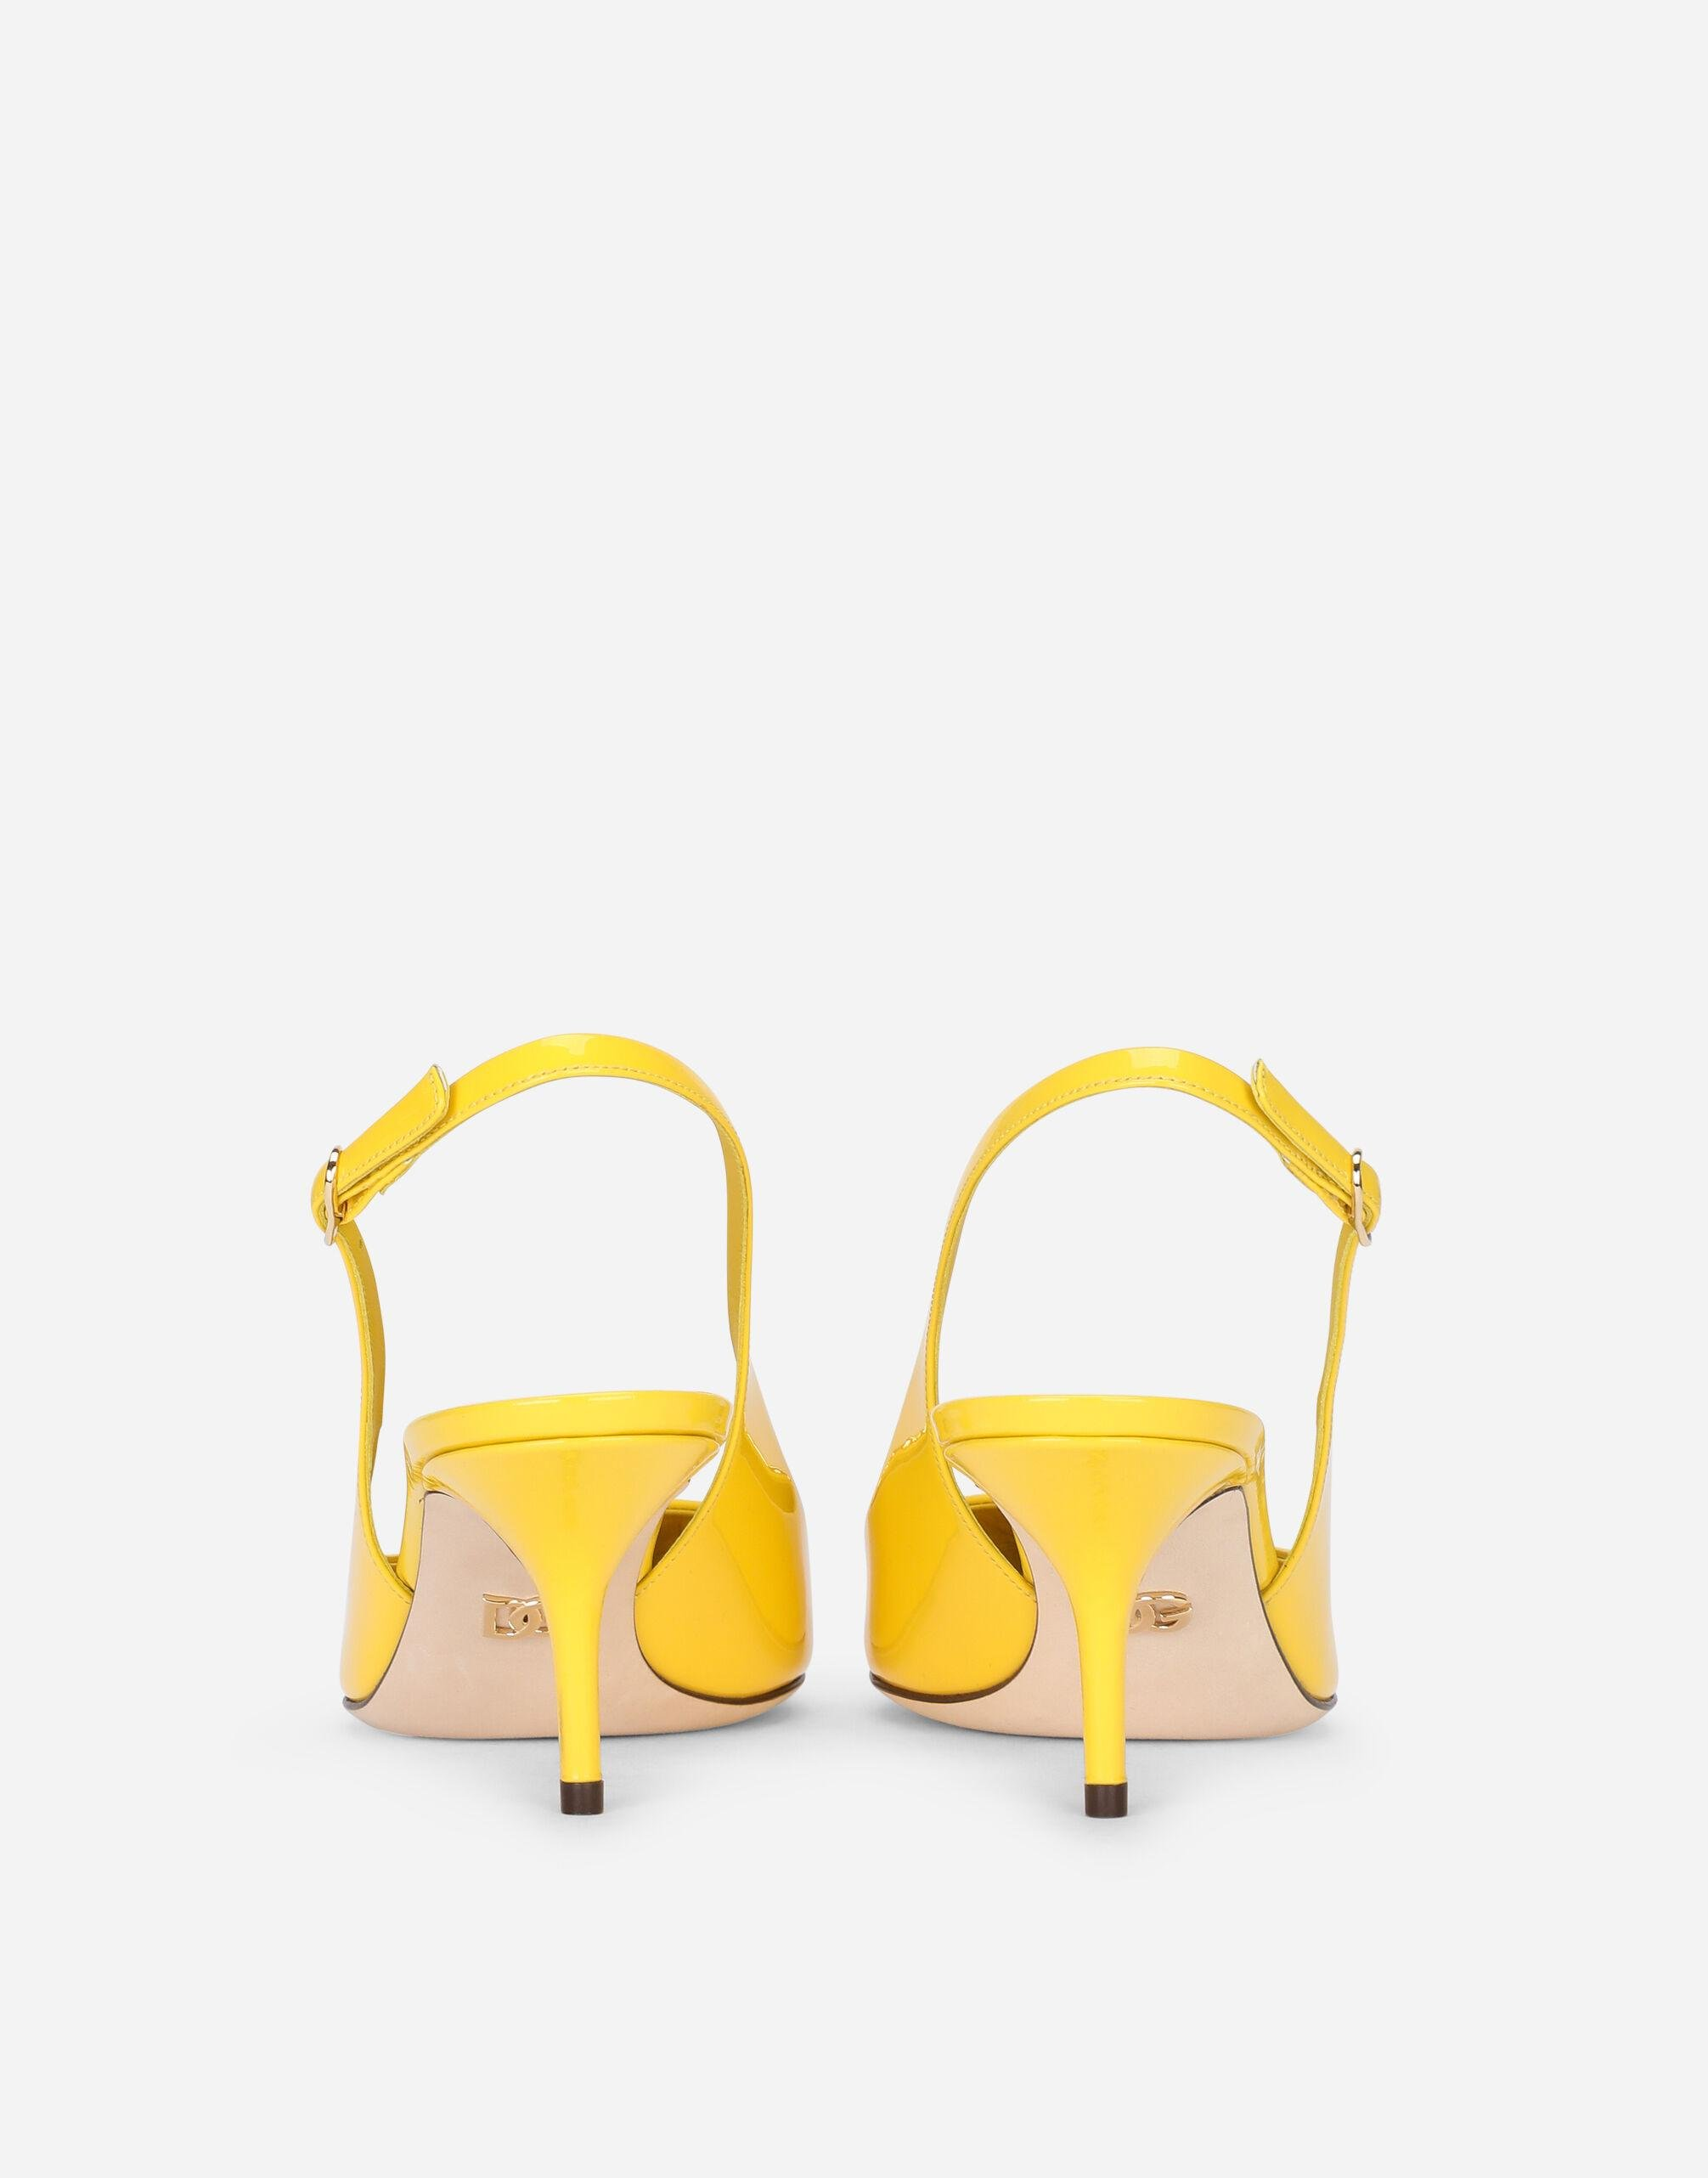 Patent leather slingbacks with DG logo 2